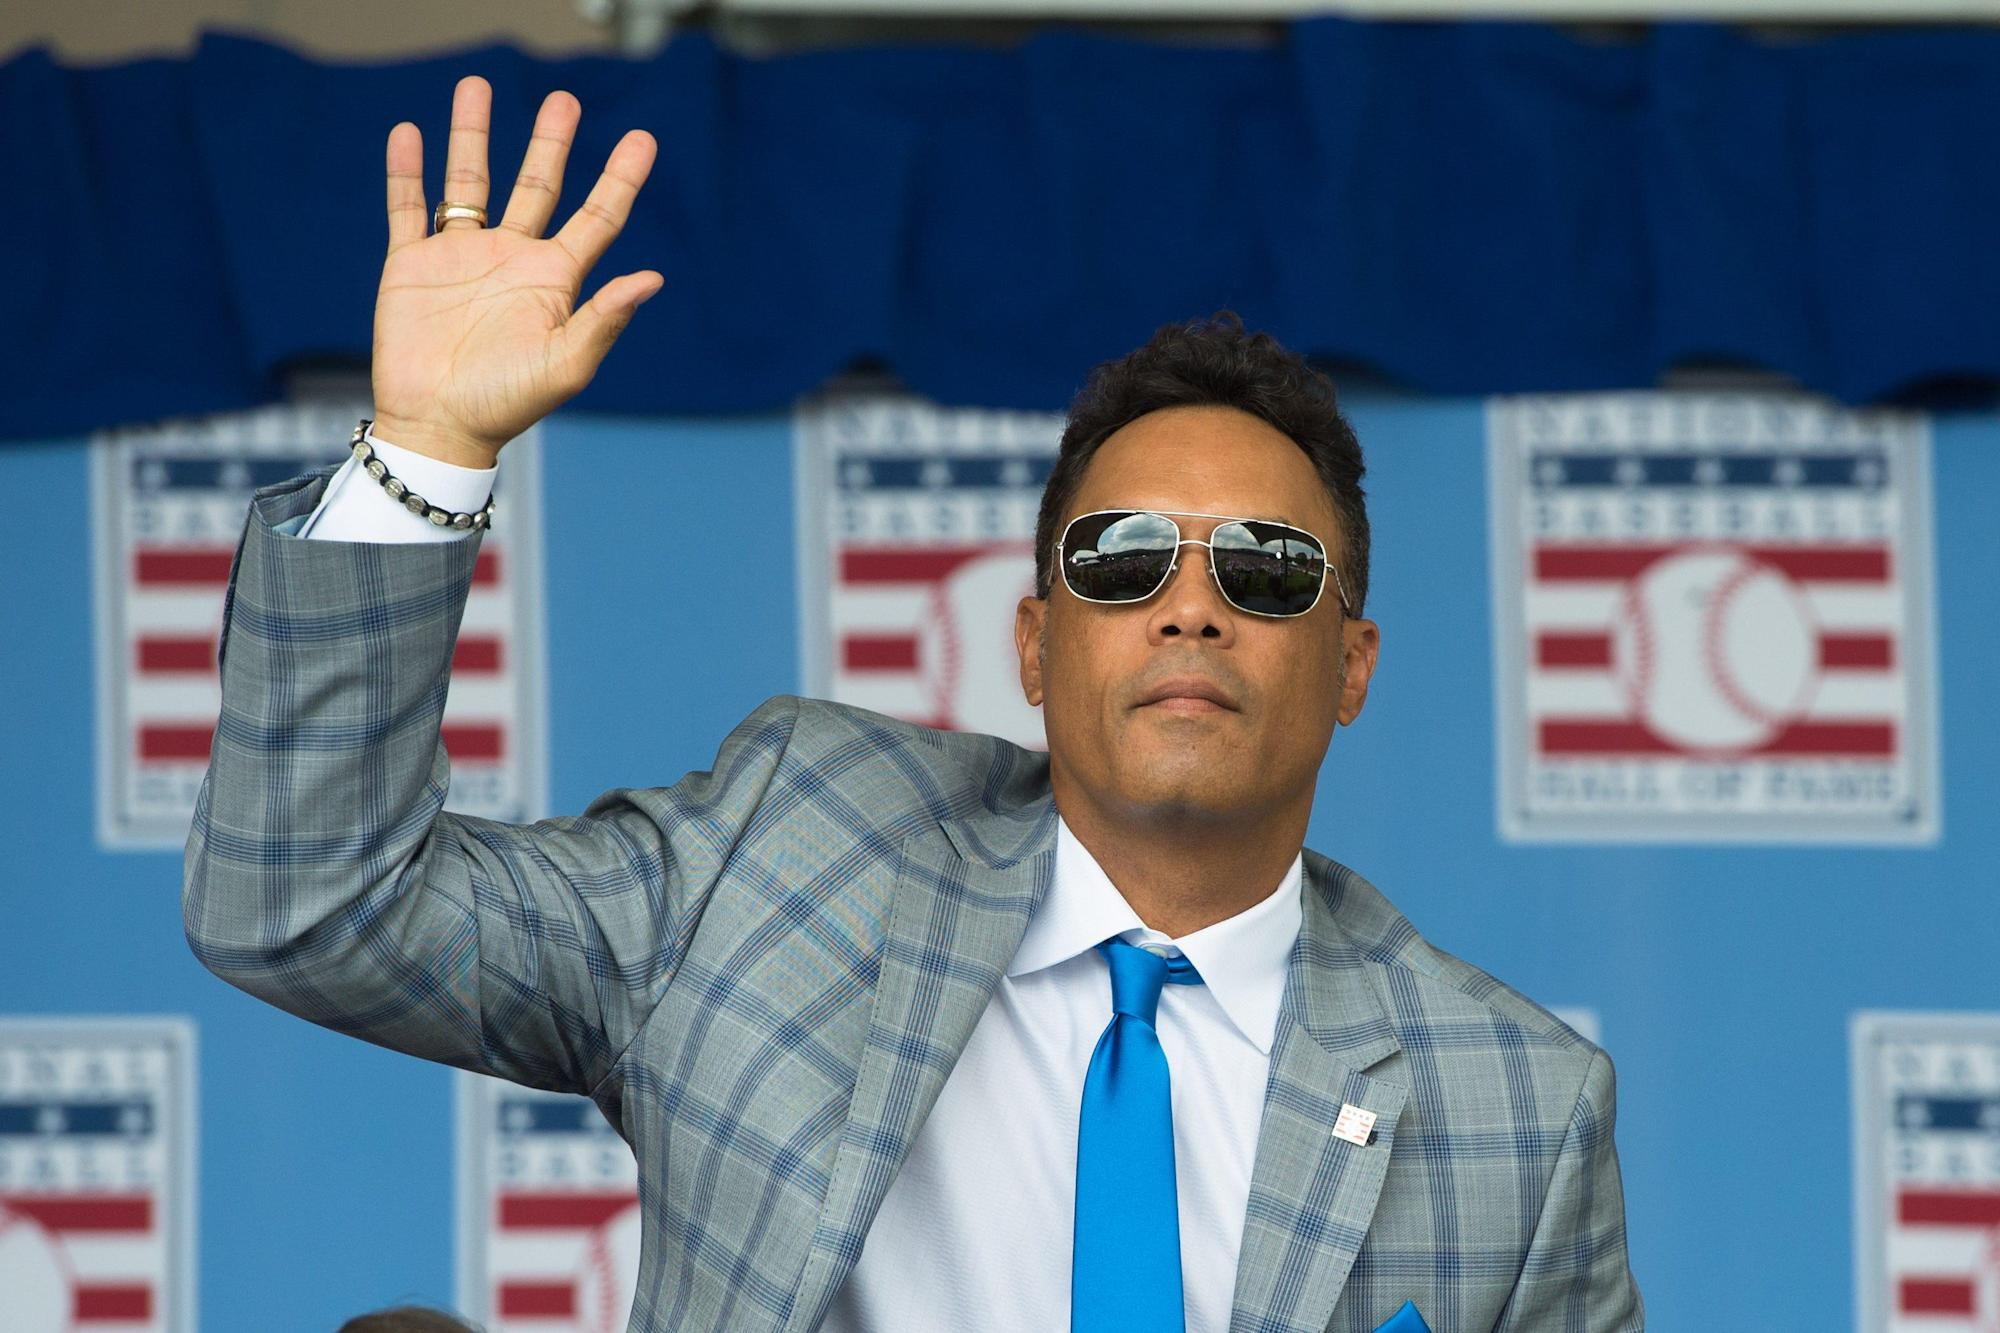 hall-of-famer-roberto-alomar-terminated-by-mlb,-put-on-ineligible-list-after-sexual-misconduct-investigation